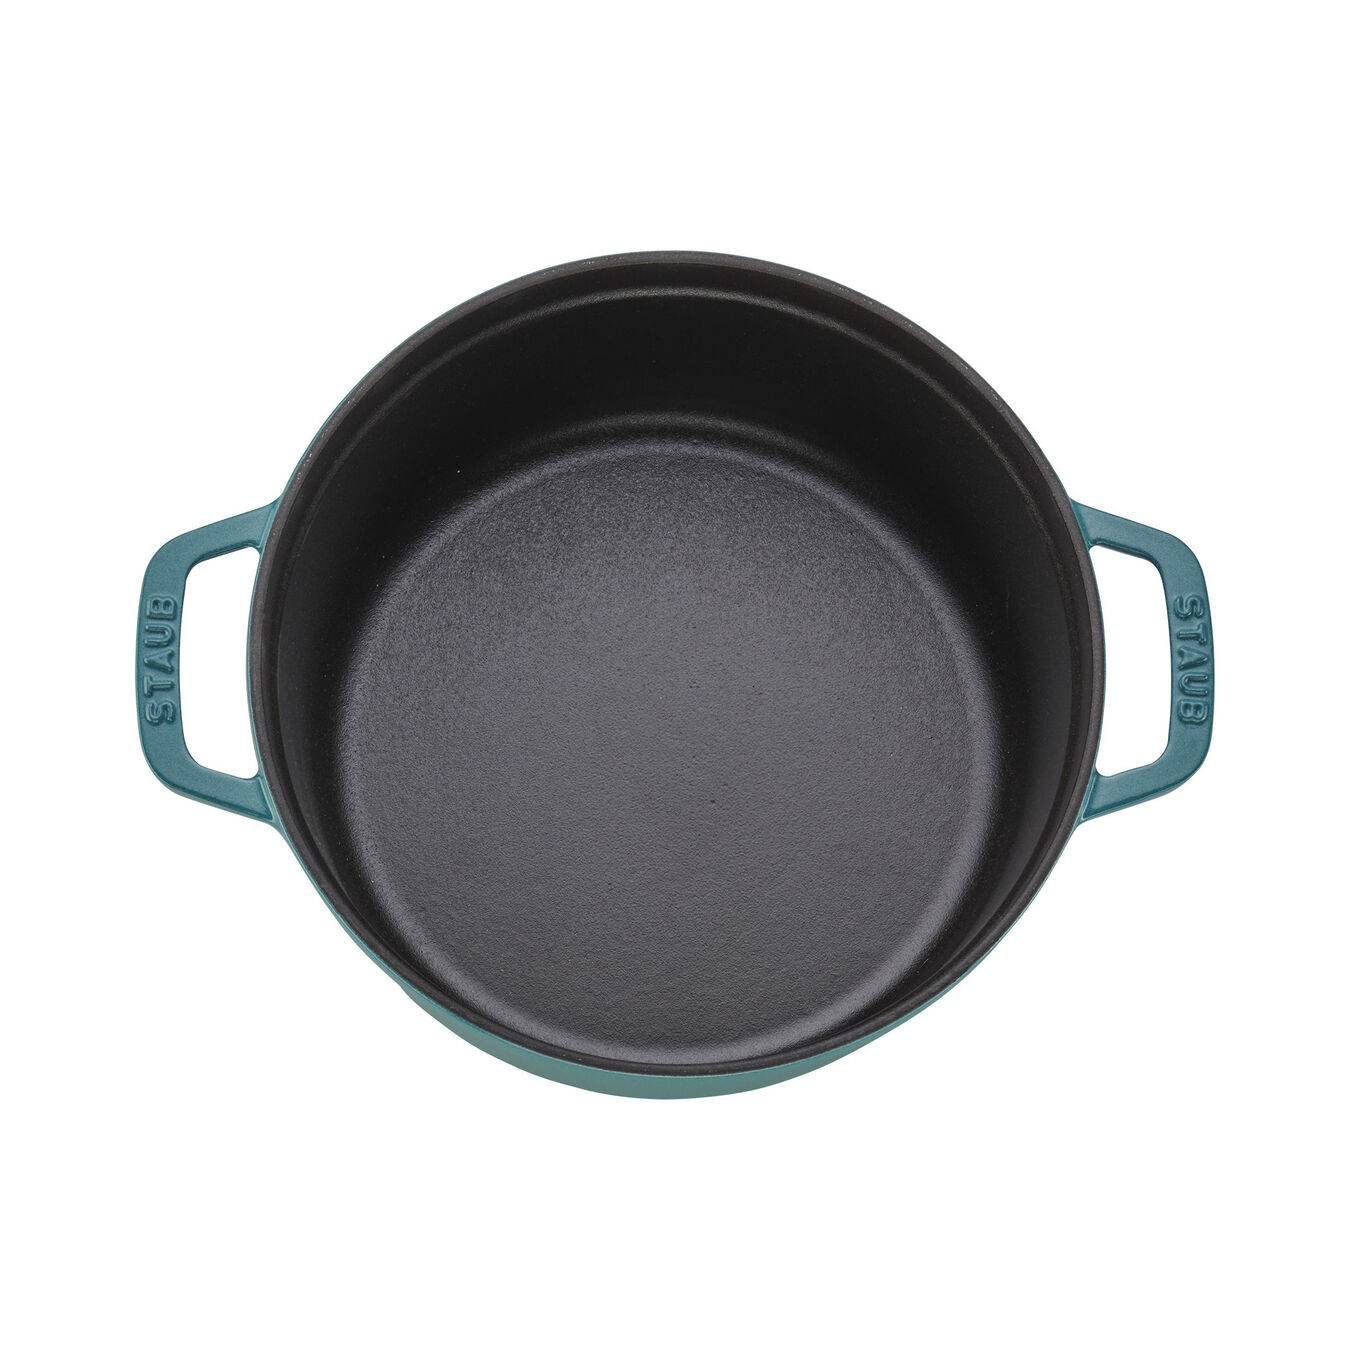 3.75 l Cast iron round Cocotte, Mint-Green,,large 3